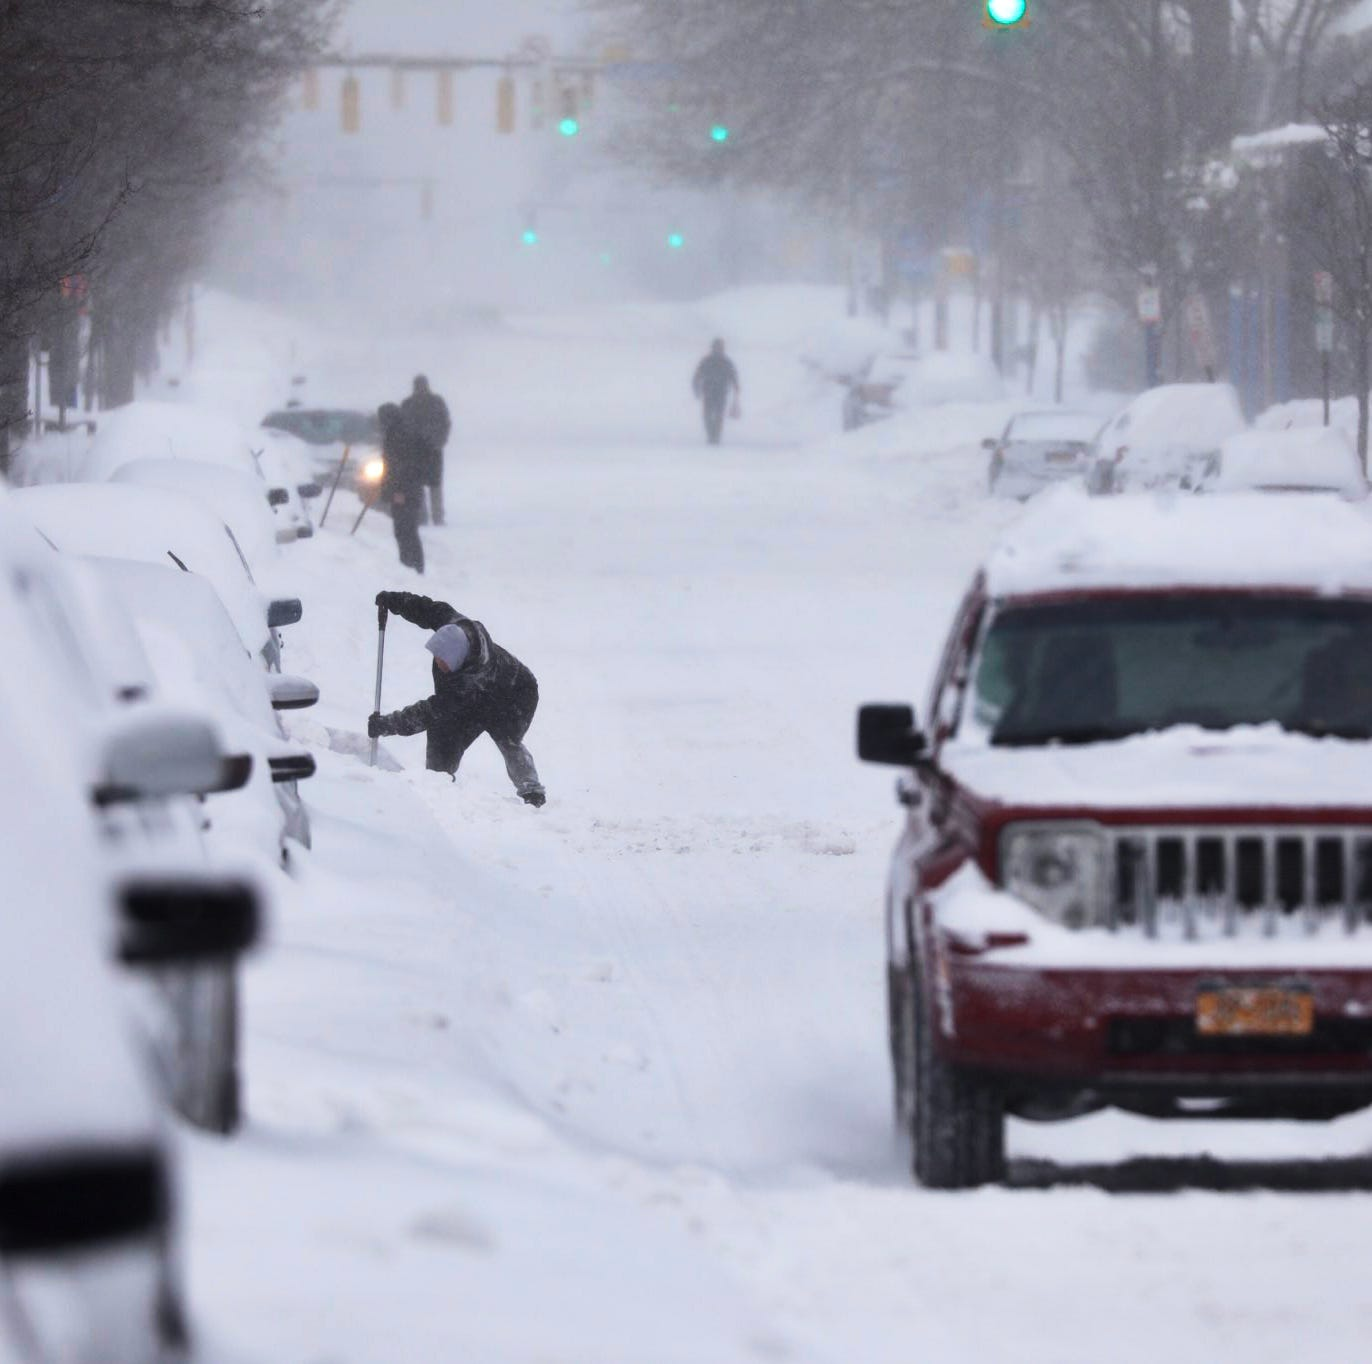 Rochester snow totals for January 19 broke record set in 1884: Latest updates